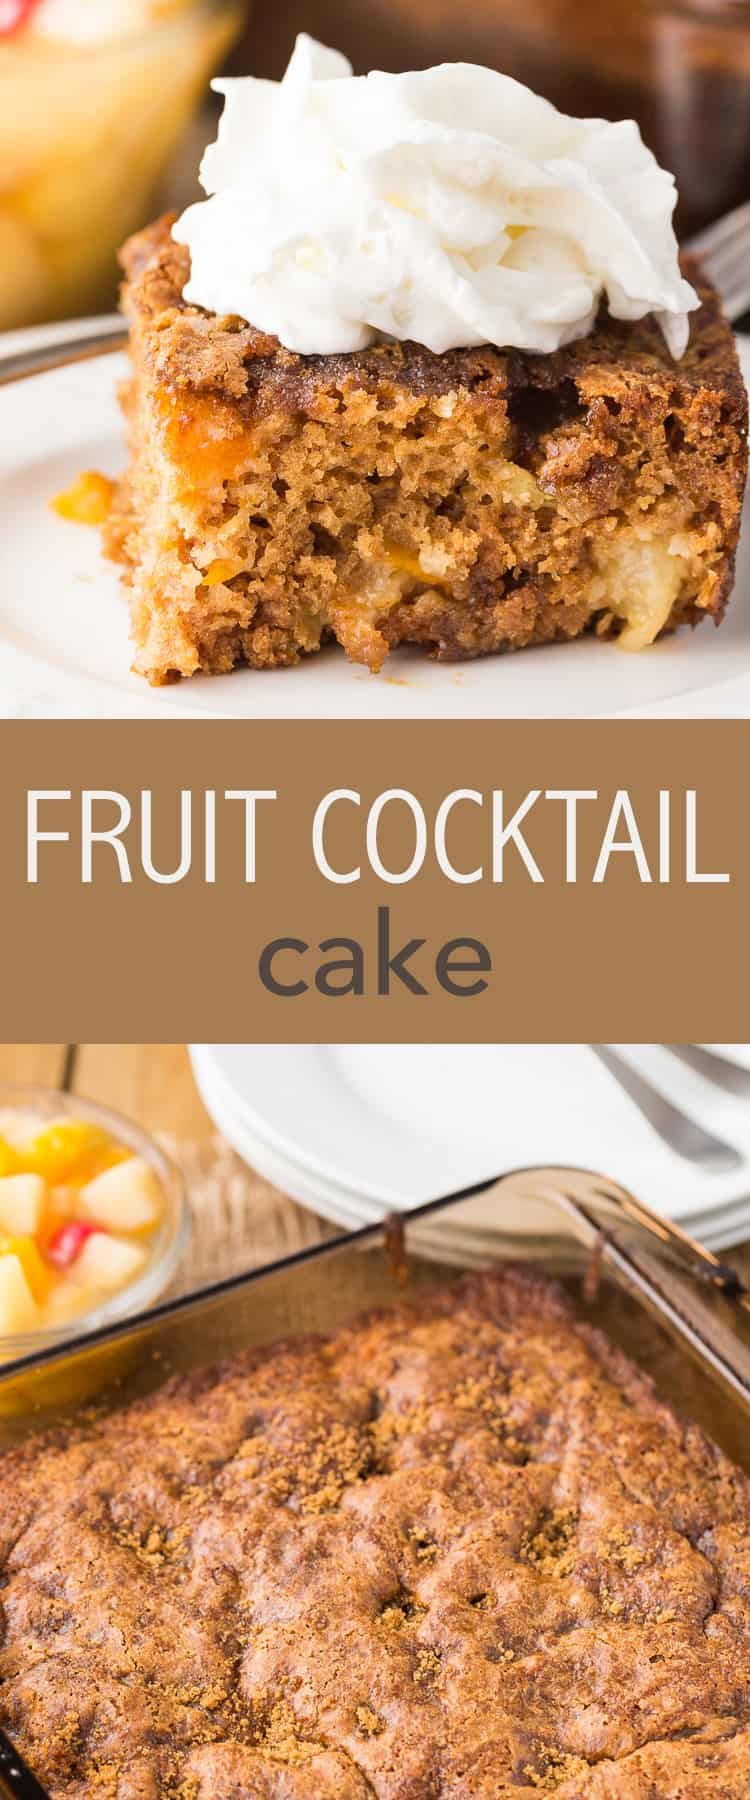 Easy Fruit Cocktail Cake recipe